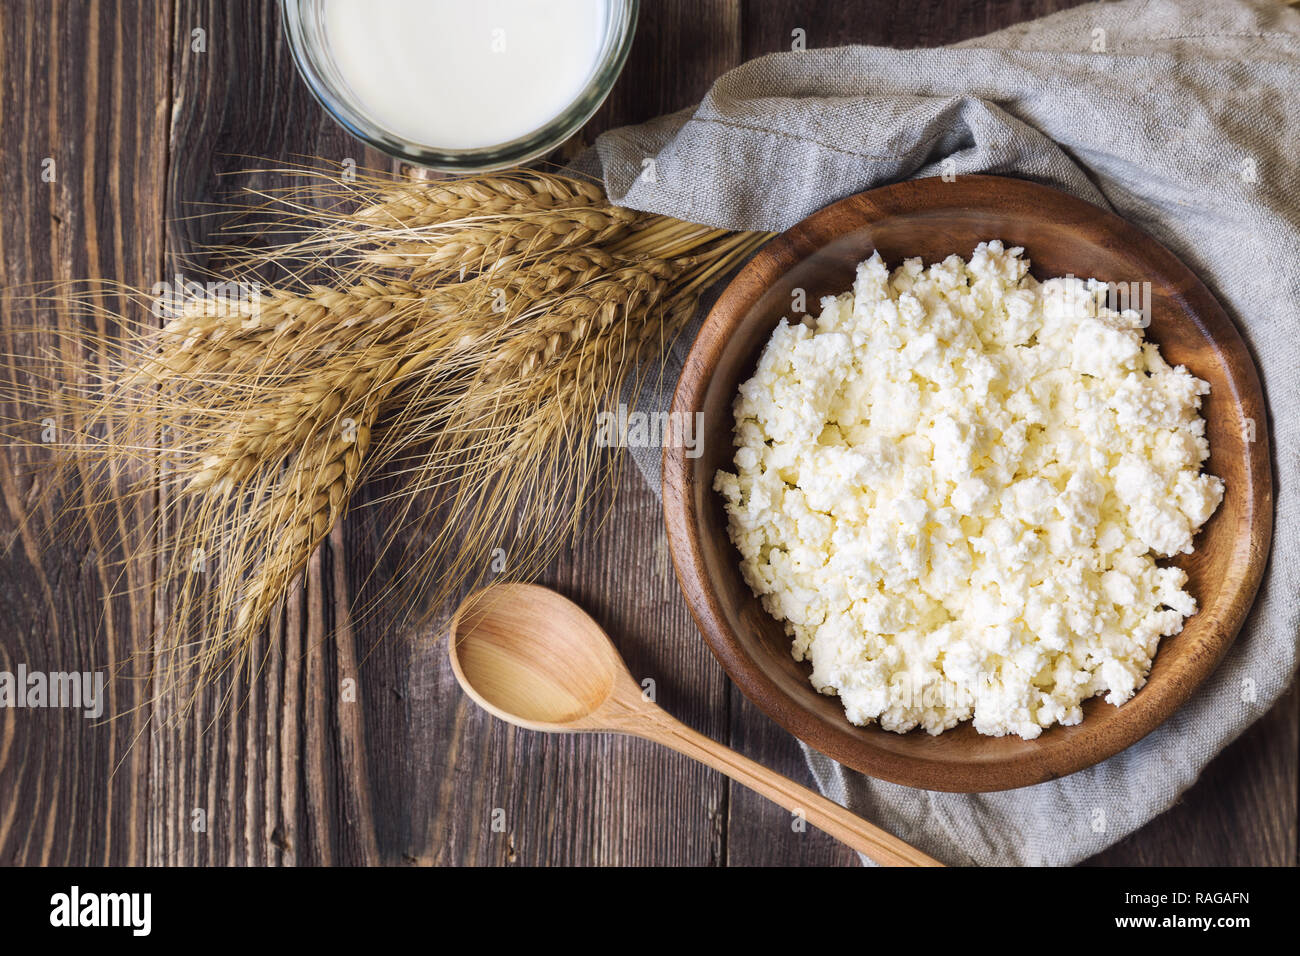 Cottage cheese, milk and ears of wheat on rustic wooden background. Dairy products for jewish holiday Shavuot. Top view. - Stock Image